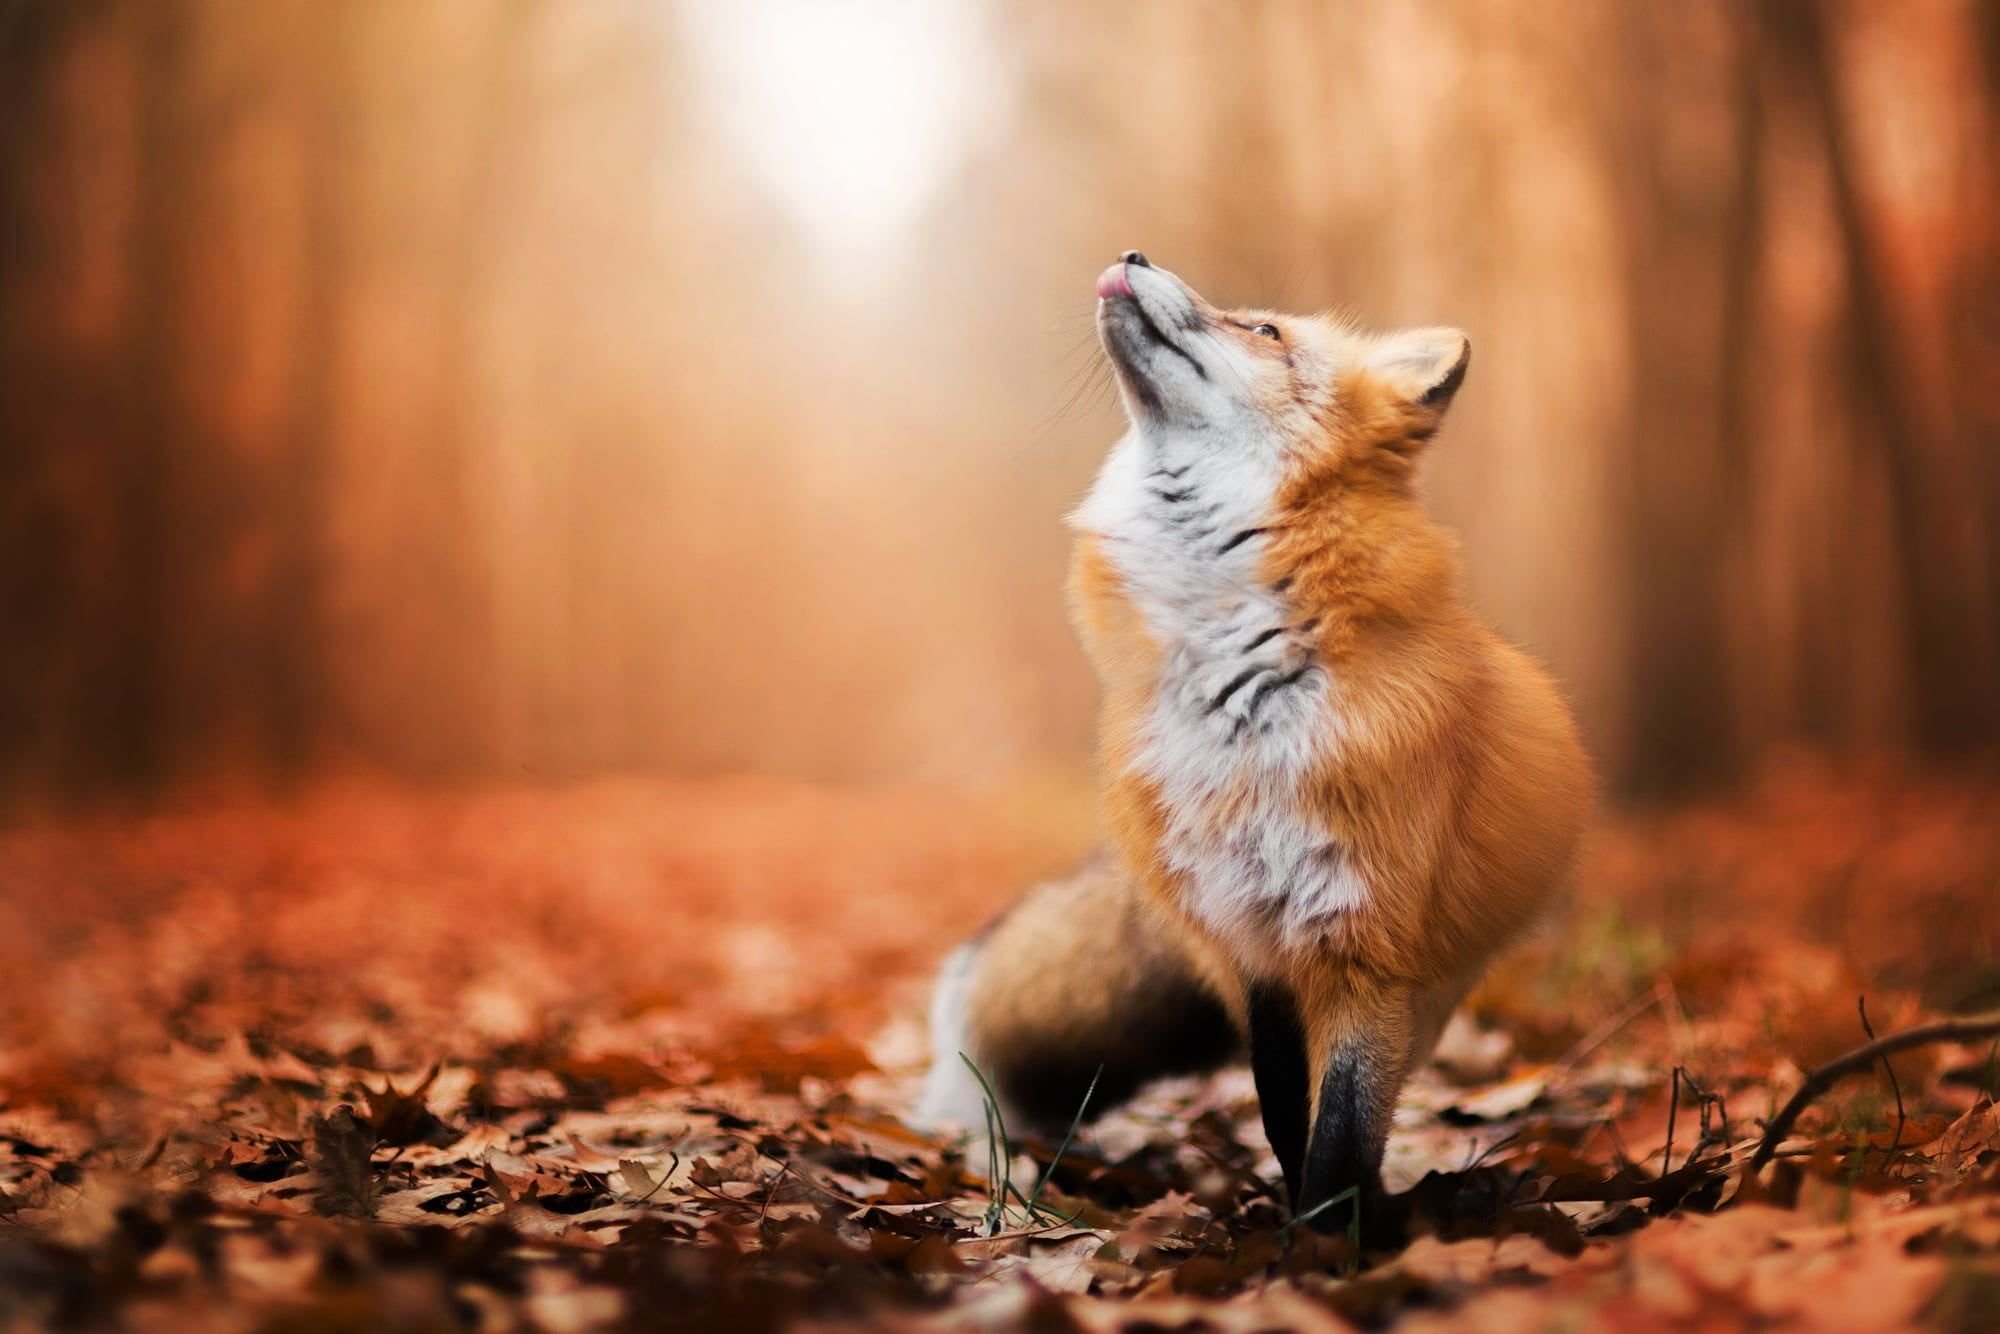 Fox Wallpaper Brown Fox Close Up Photo Fox Animals Nature Wildlife Landscape Forest Fallen Leaves Red Leaves 1080p In 2020 Cute Animals Animals Beautiful Fox